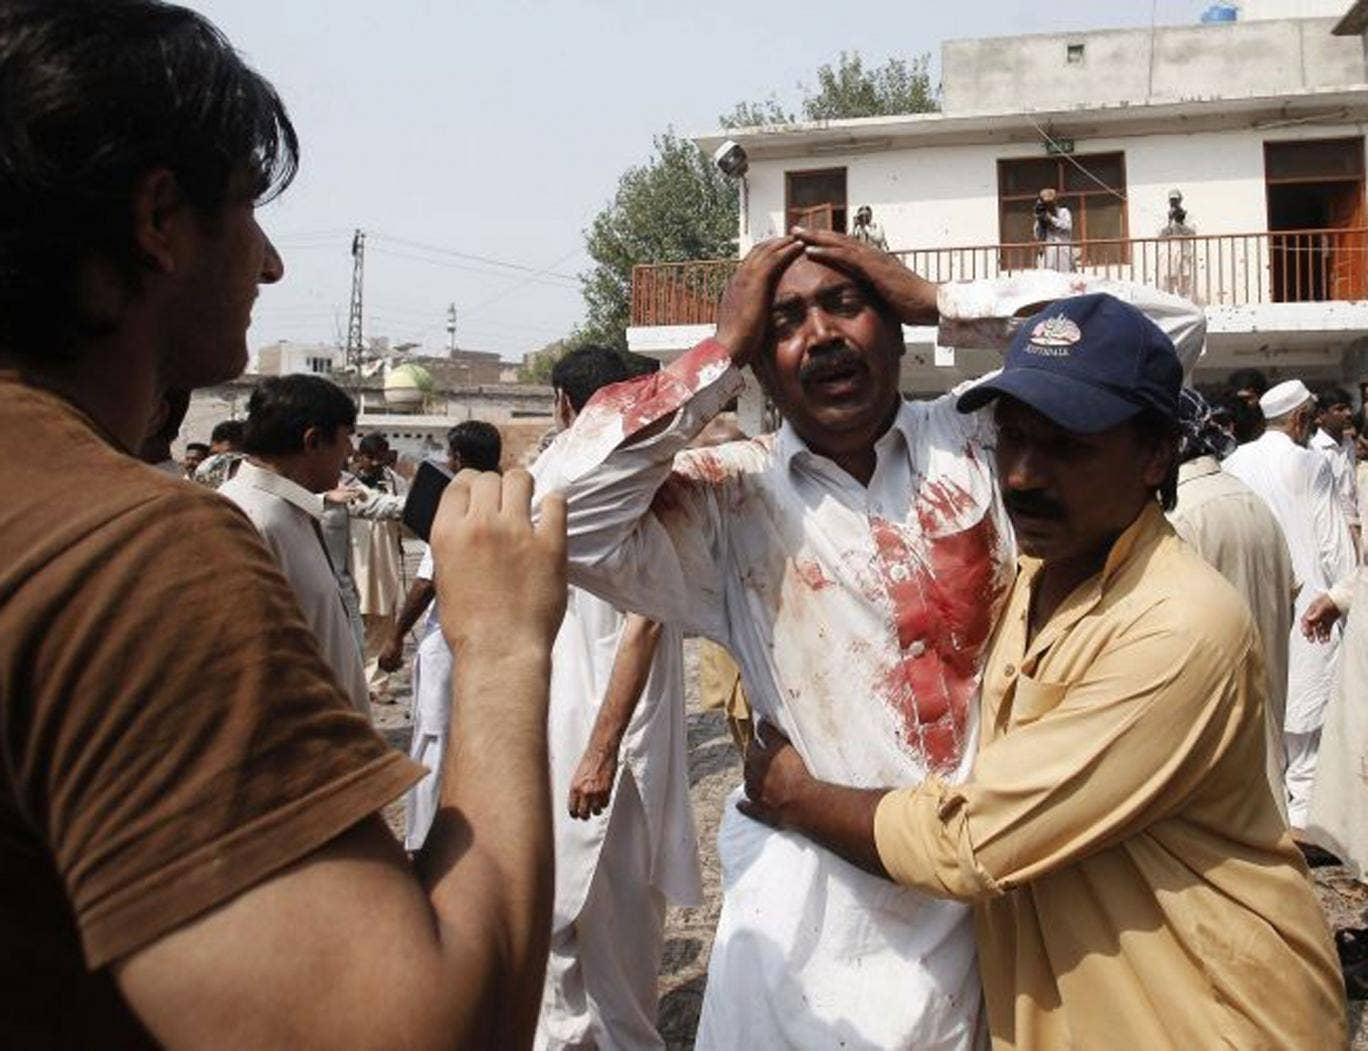 A man cries at the death of his brother at the blast site